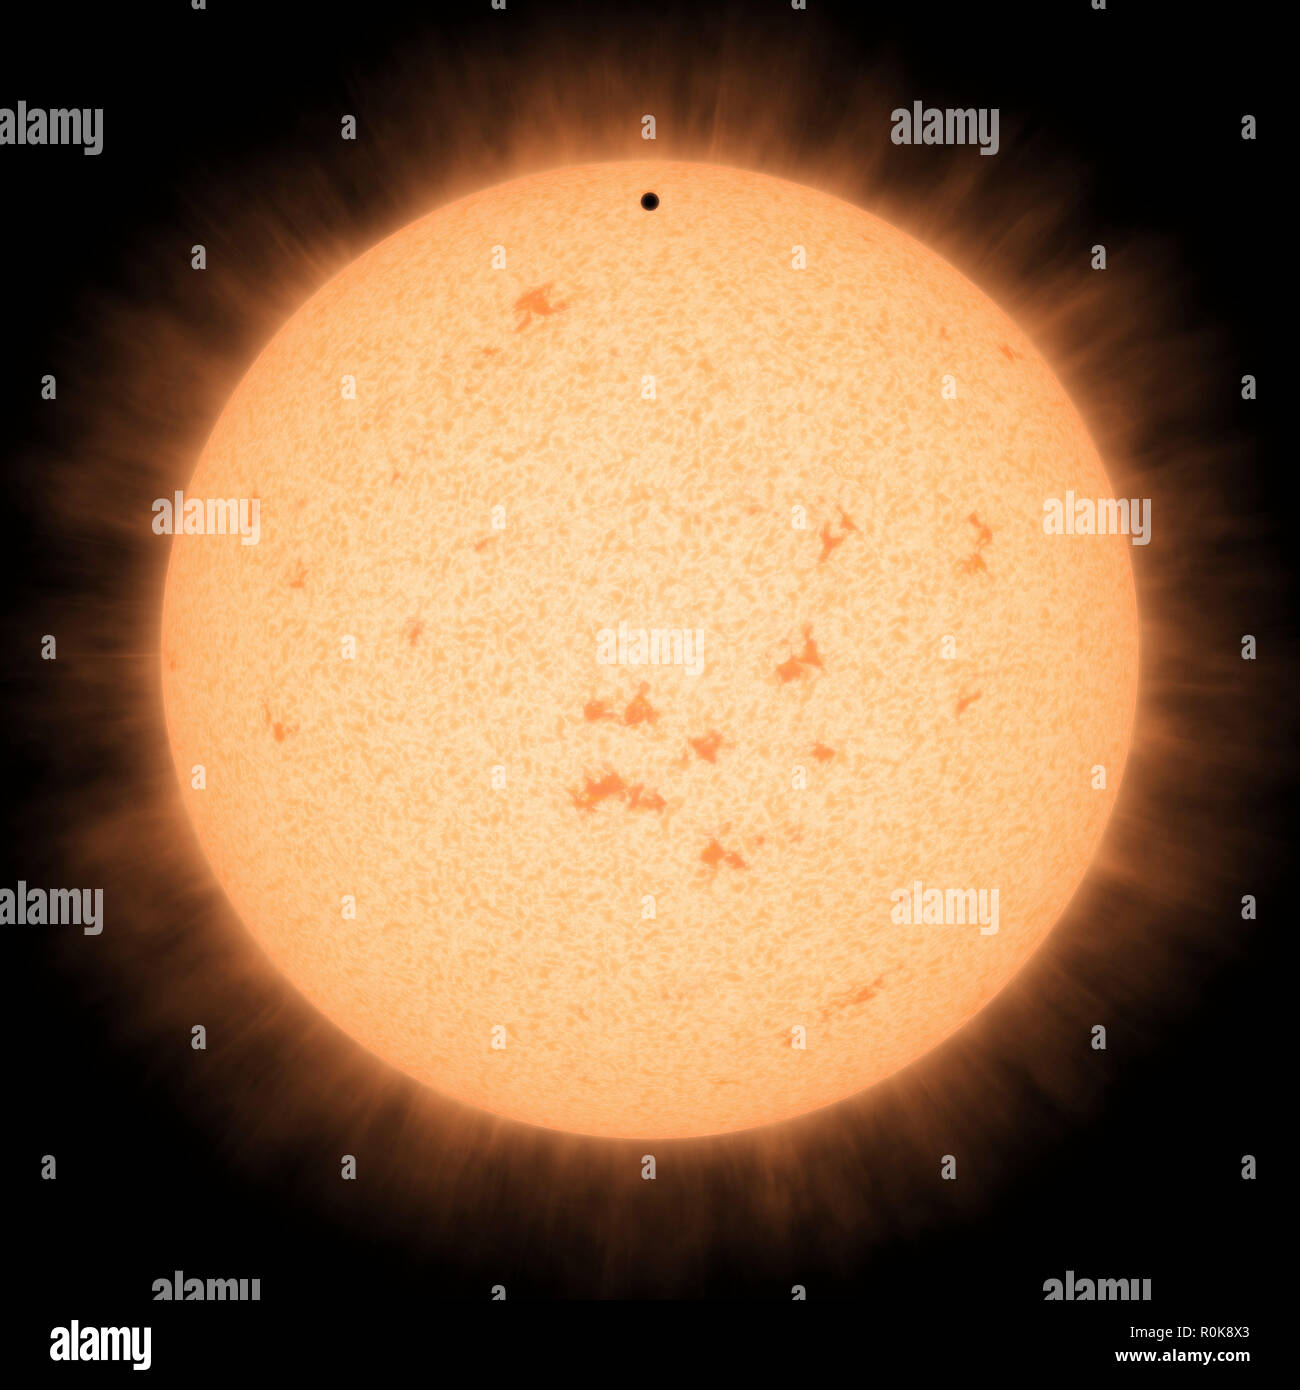 Artist's concept of the hot rocky exoplanet HD 219134 b as it passes in front of its star. - Stock Image